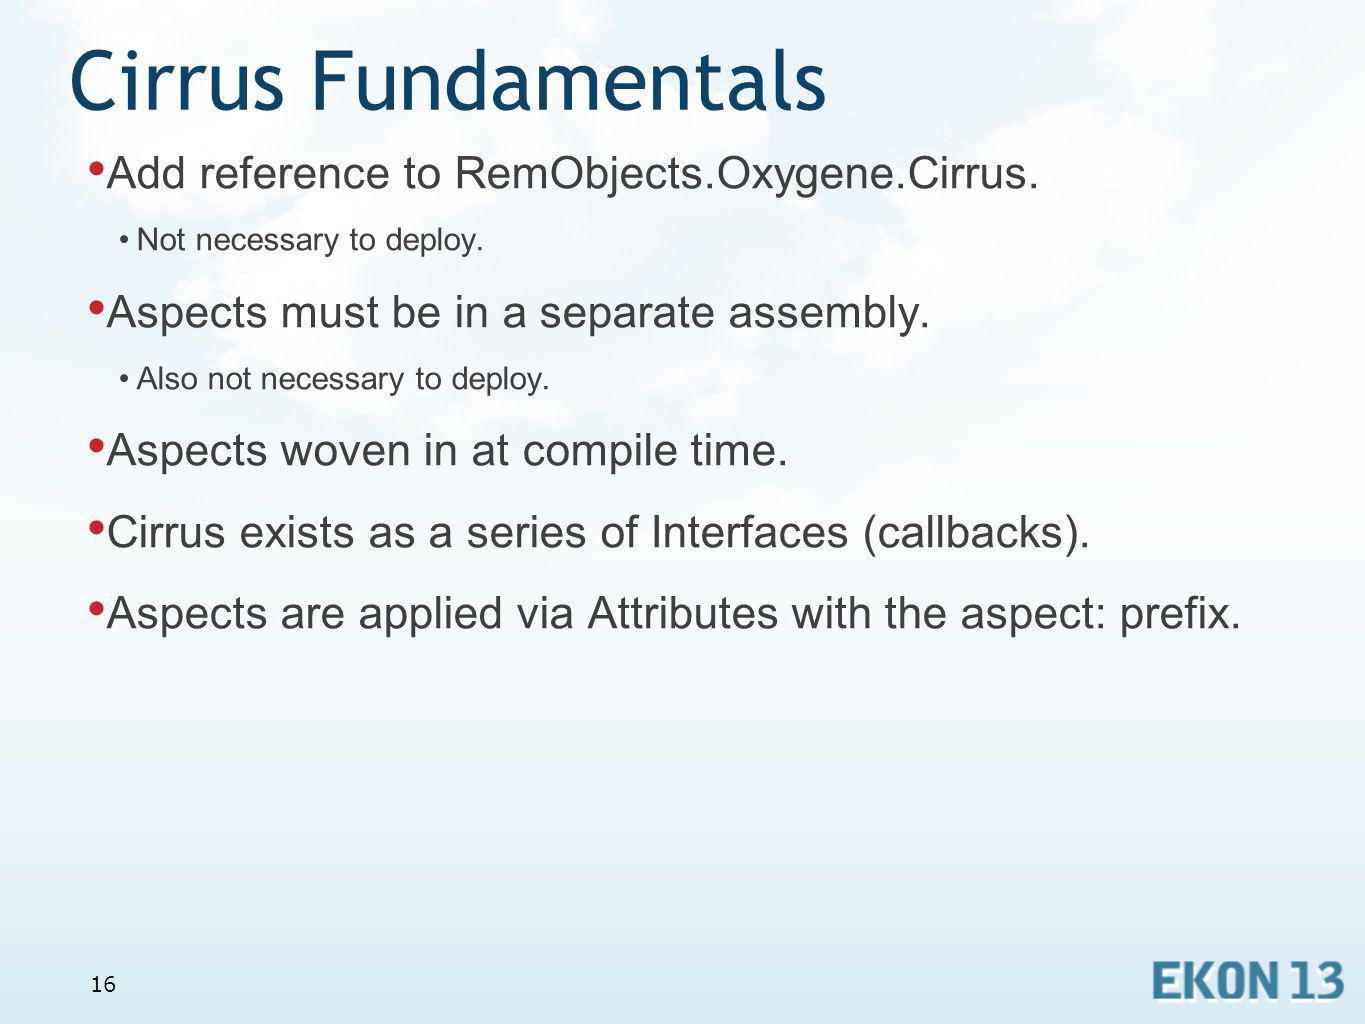 Cirrus Fundamentals Add reference to RemObjects.Oxygene.Cirrus.